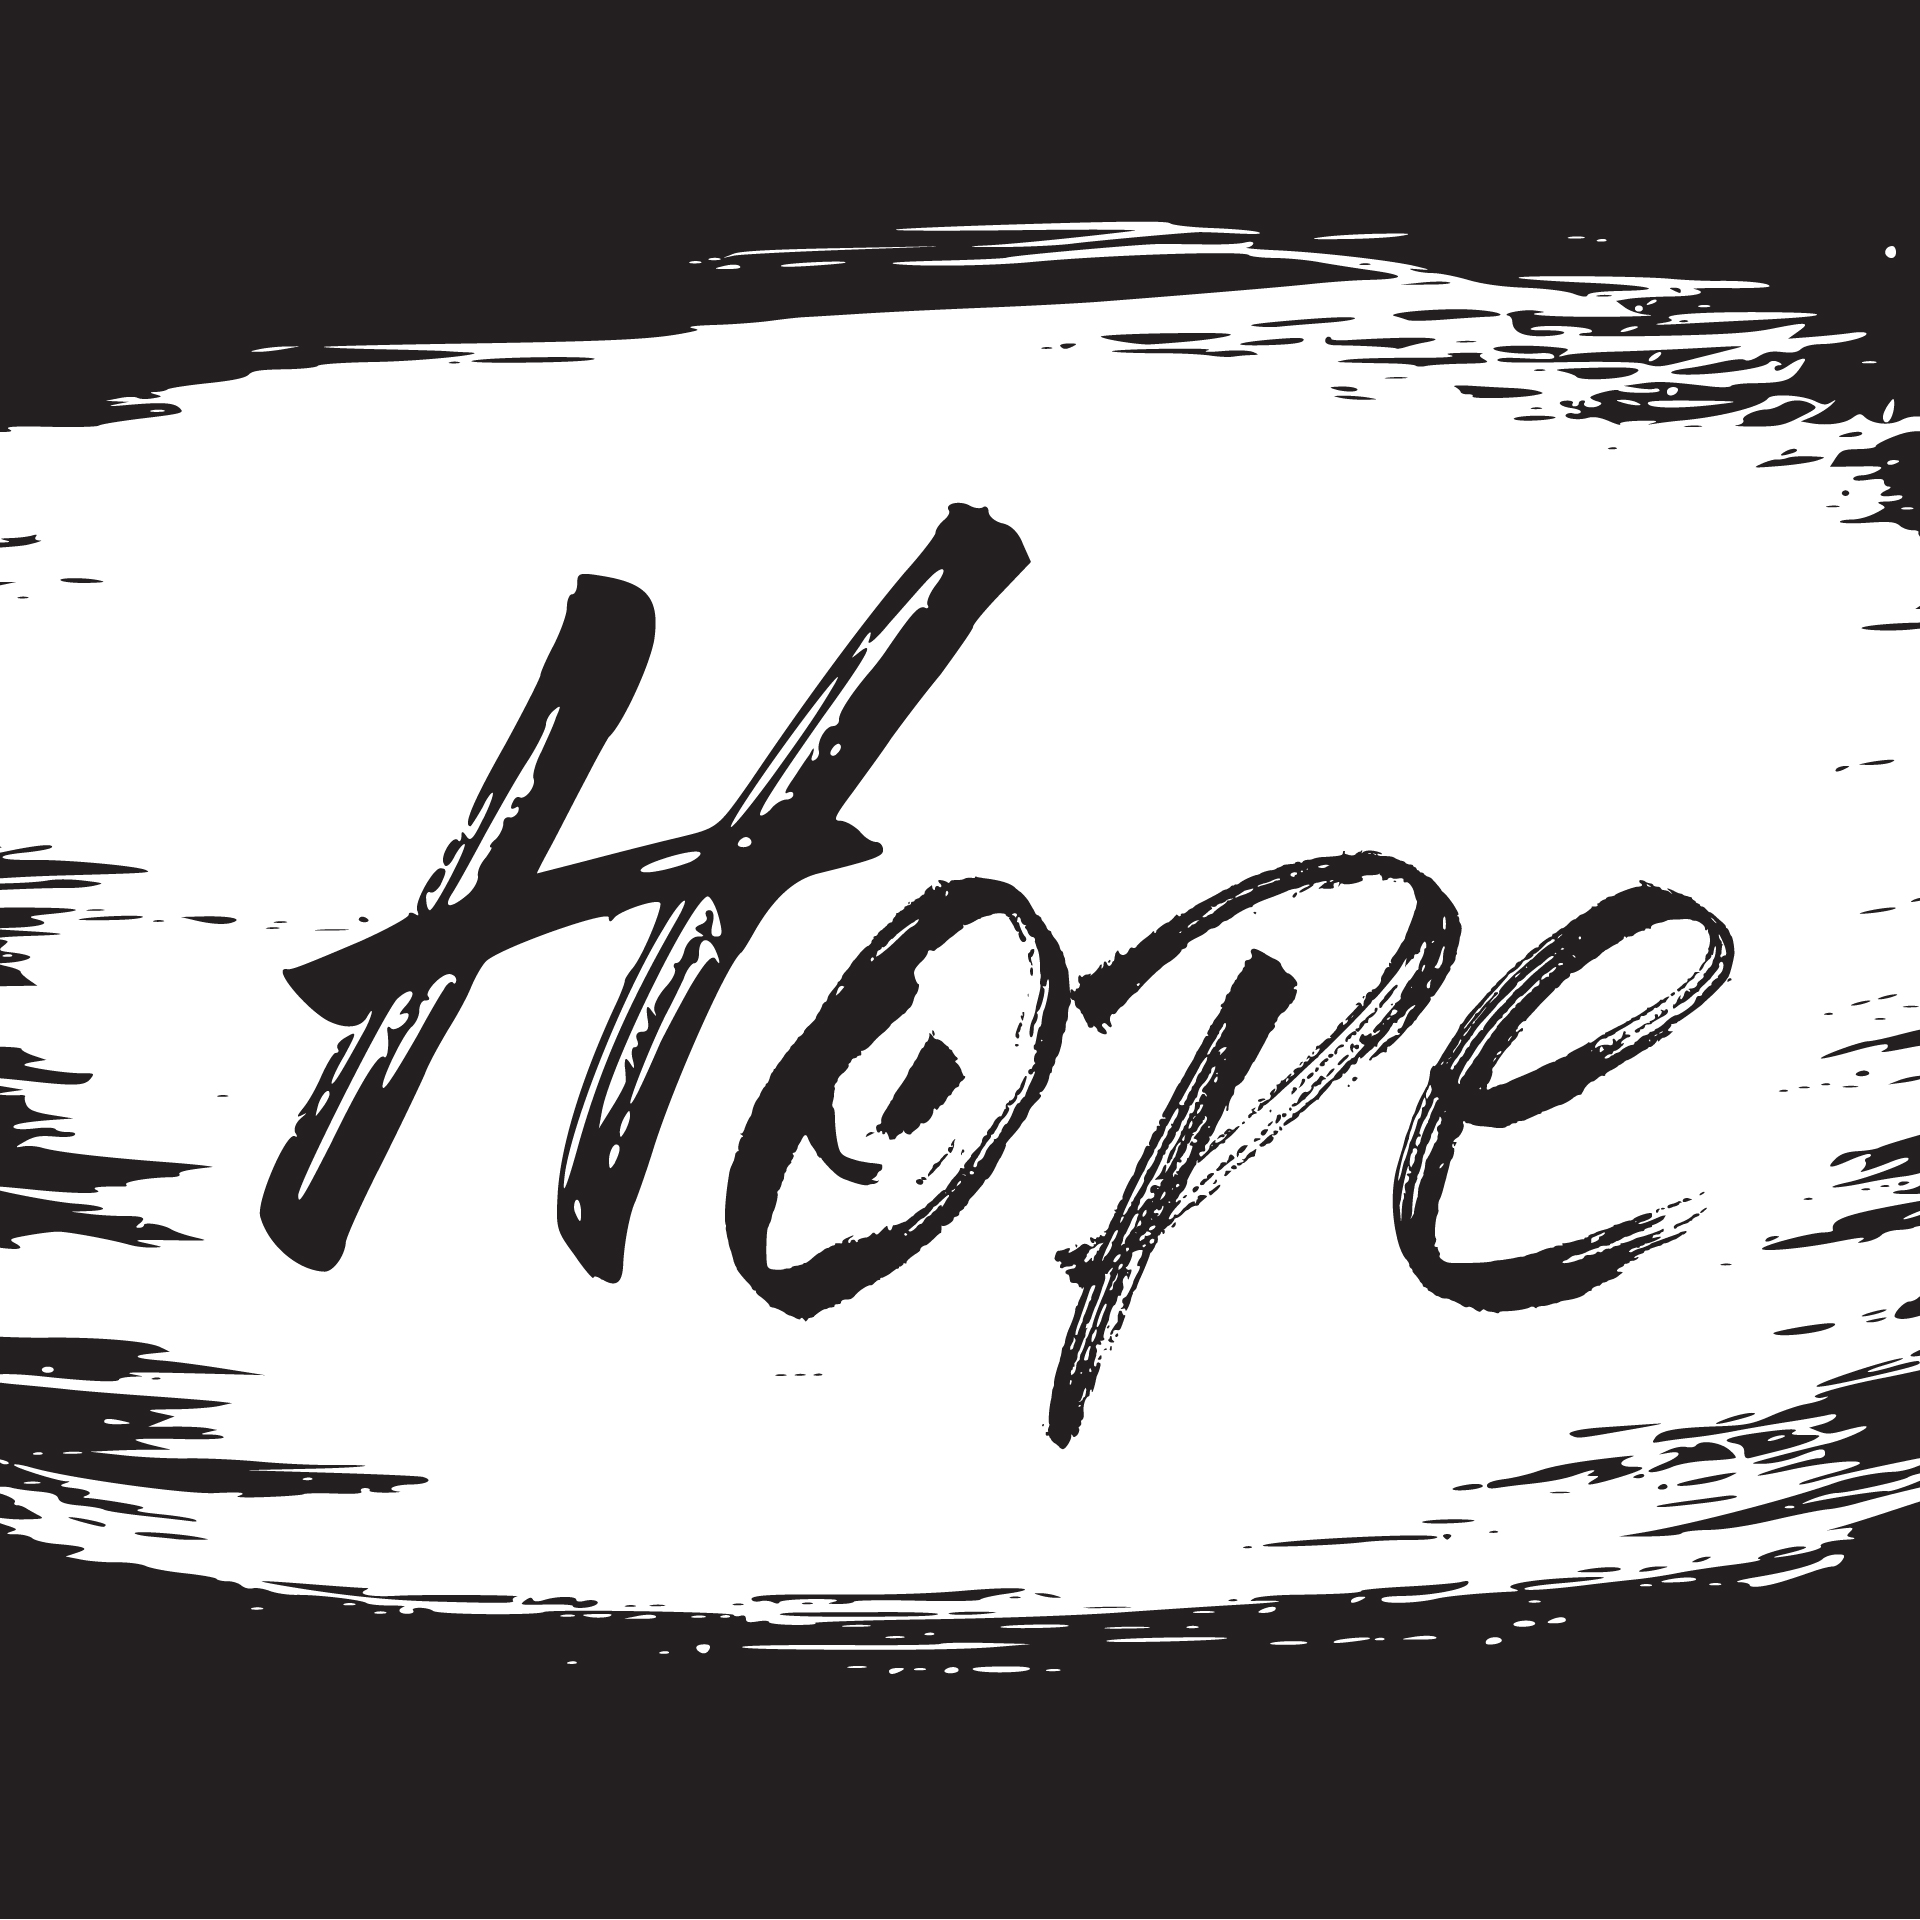 Hope (John 11:17-27) - Easter Sunday